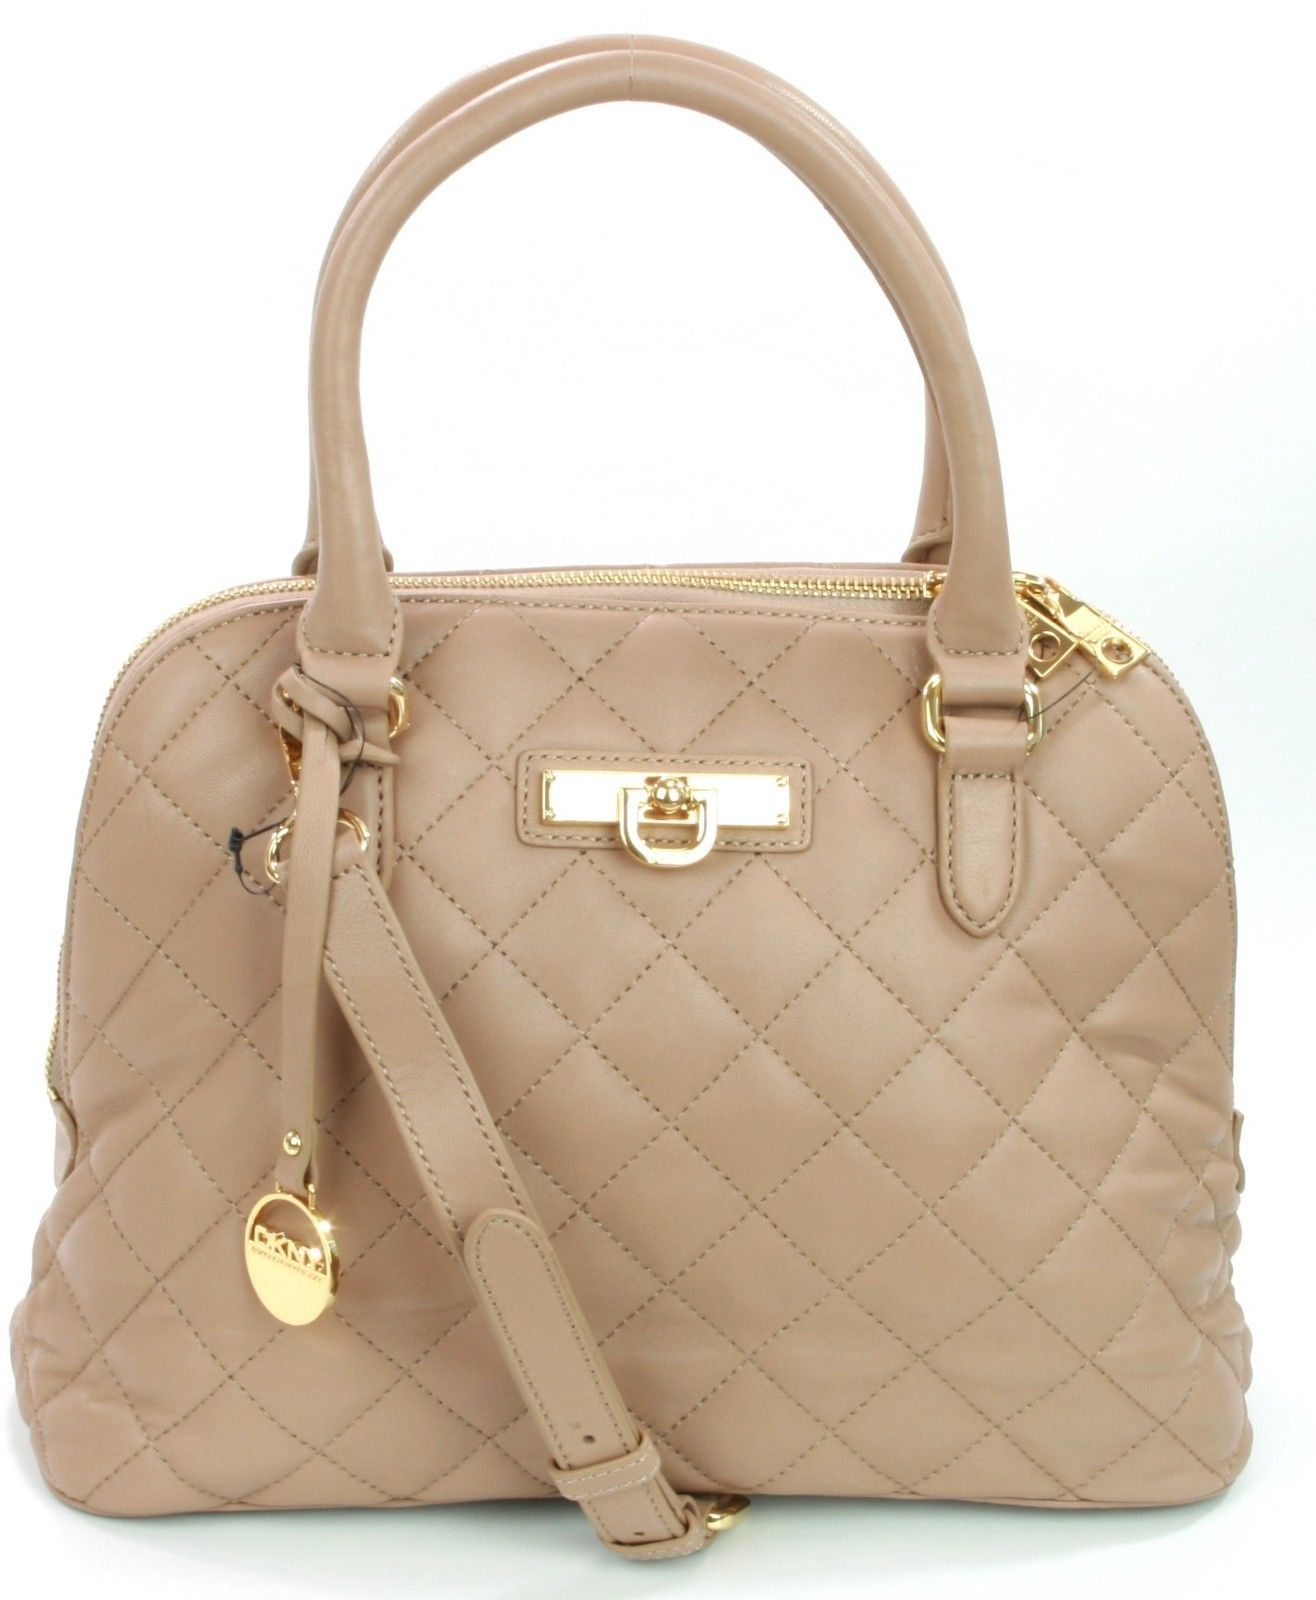 Primary image for DKNY Donna Karan Quilted Leather Handbag Taupe Beige RRP £300